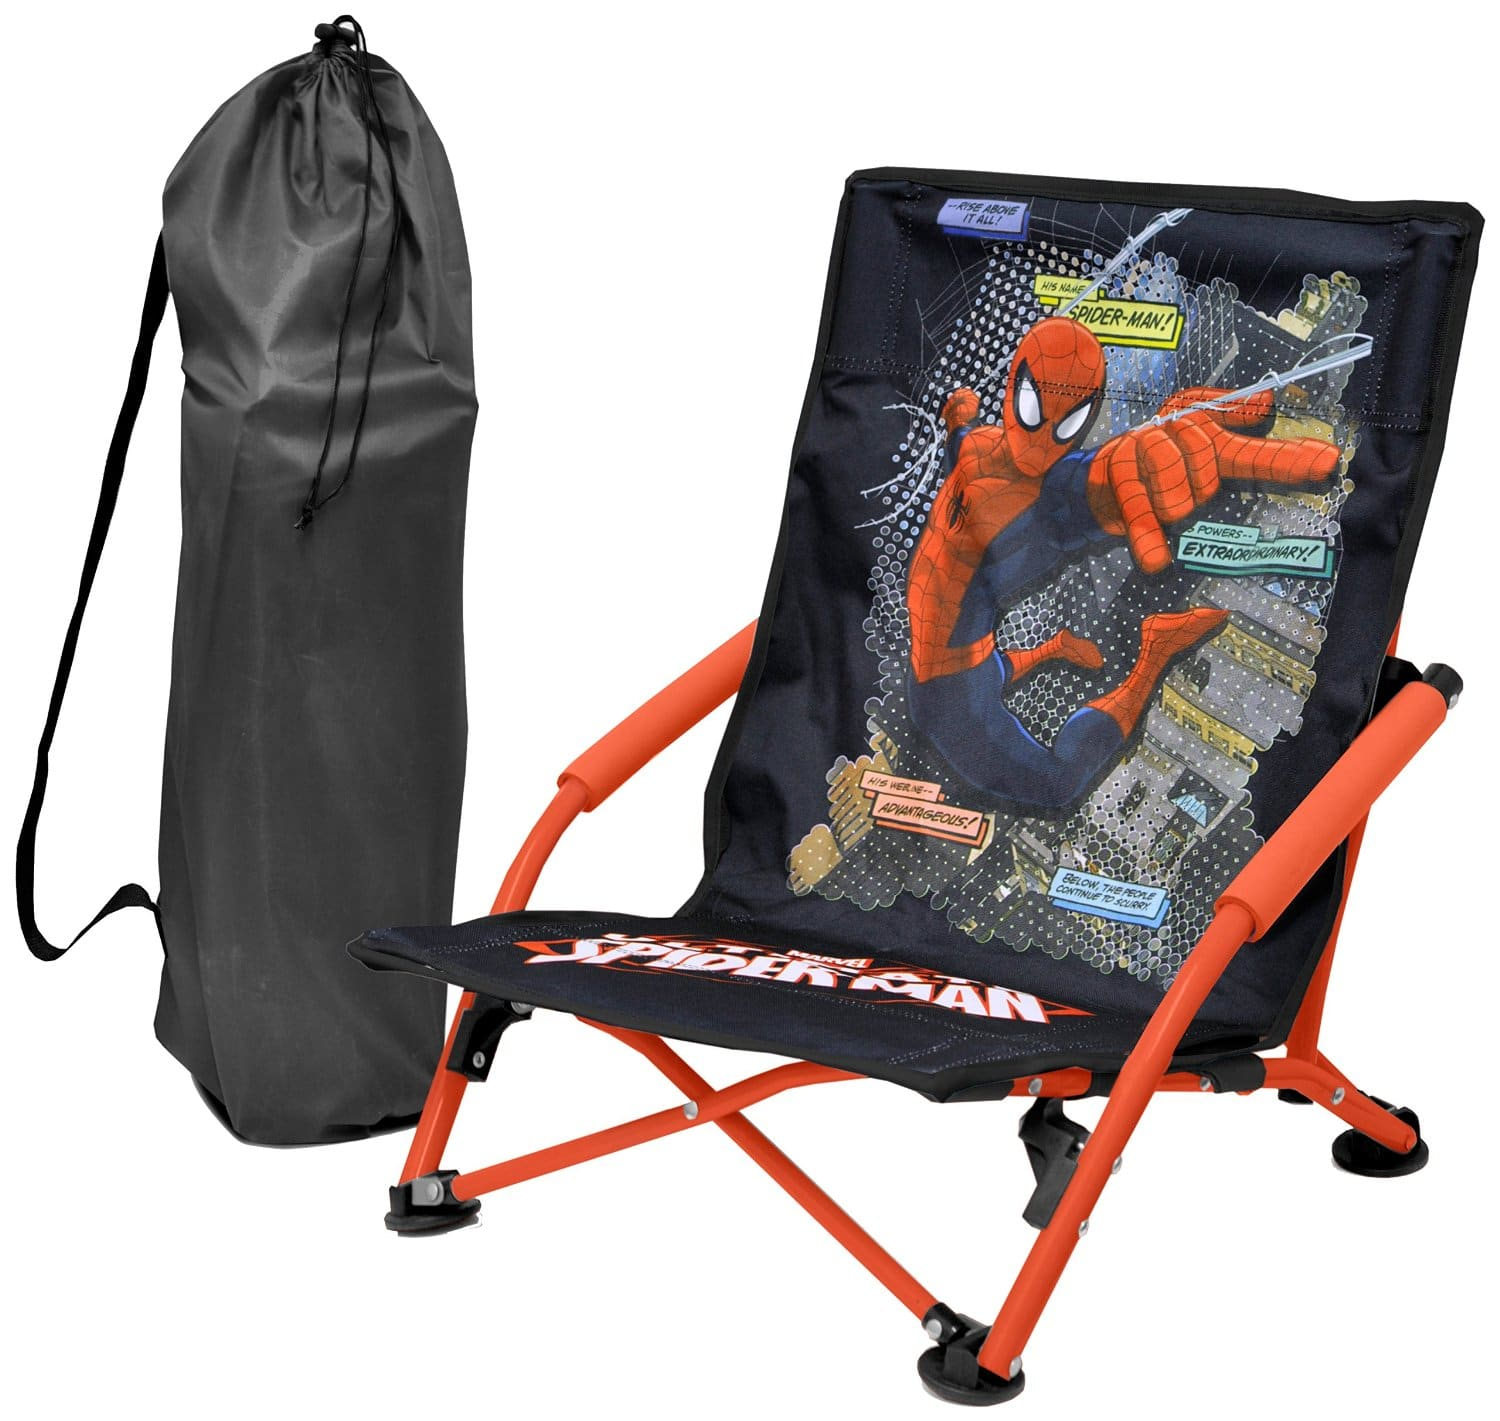 Top 10 Folding Chairs for Kids in 2020 Reviews